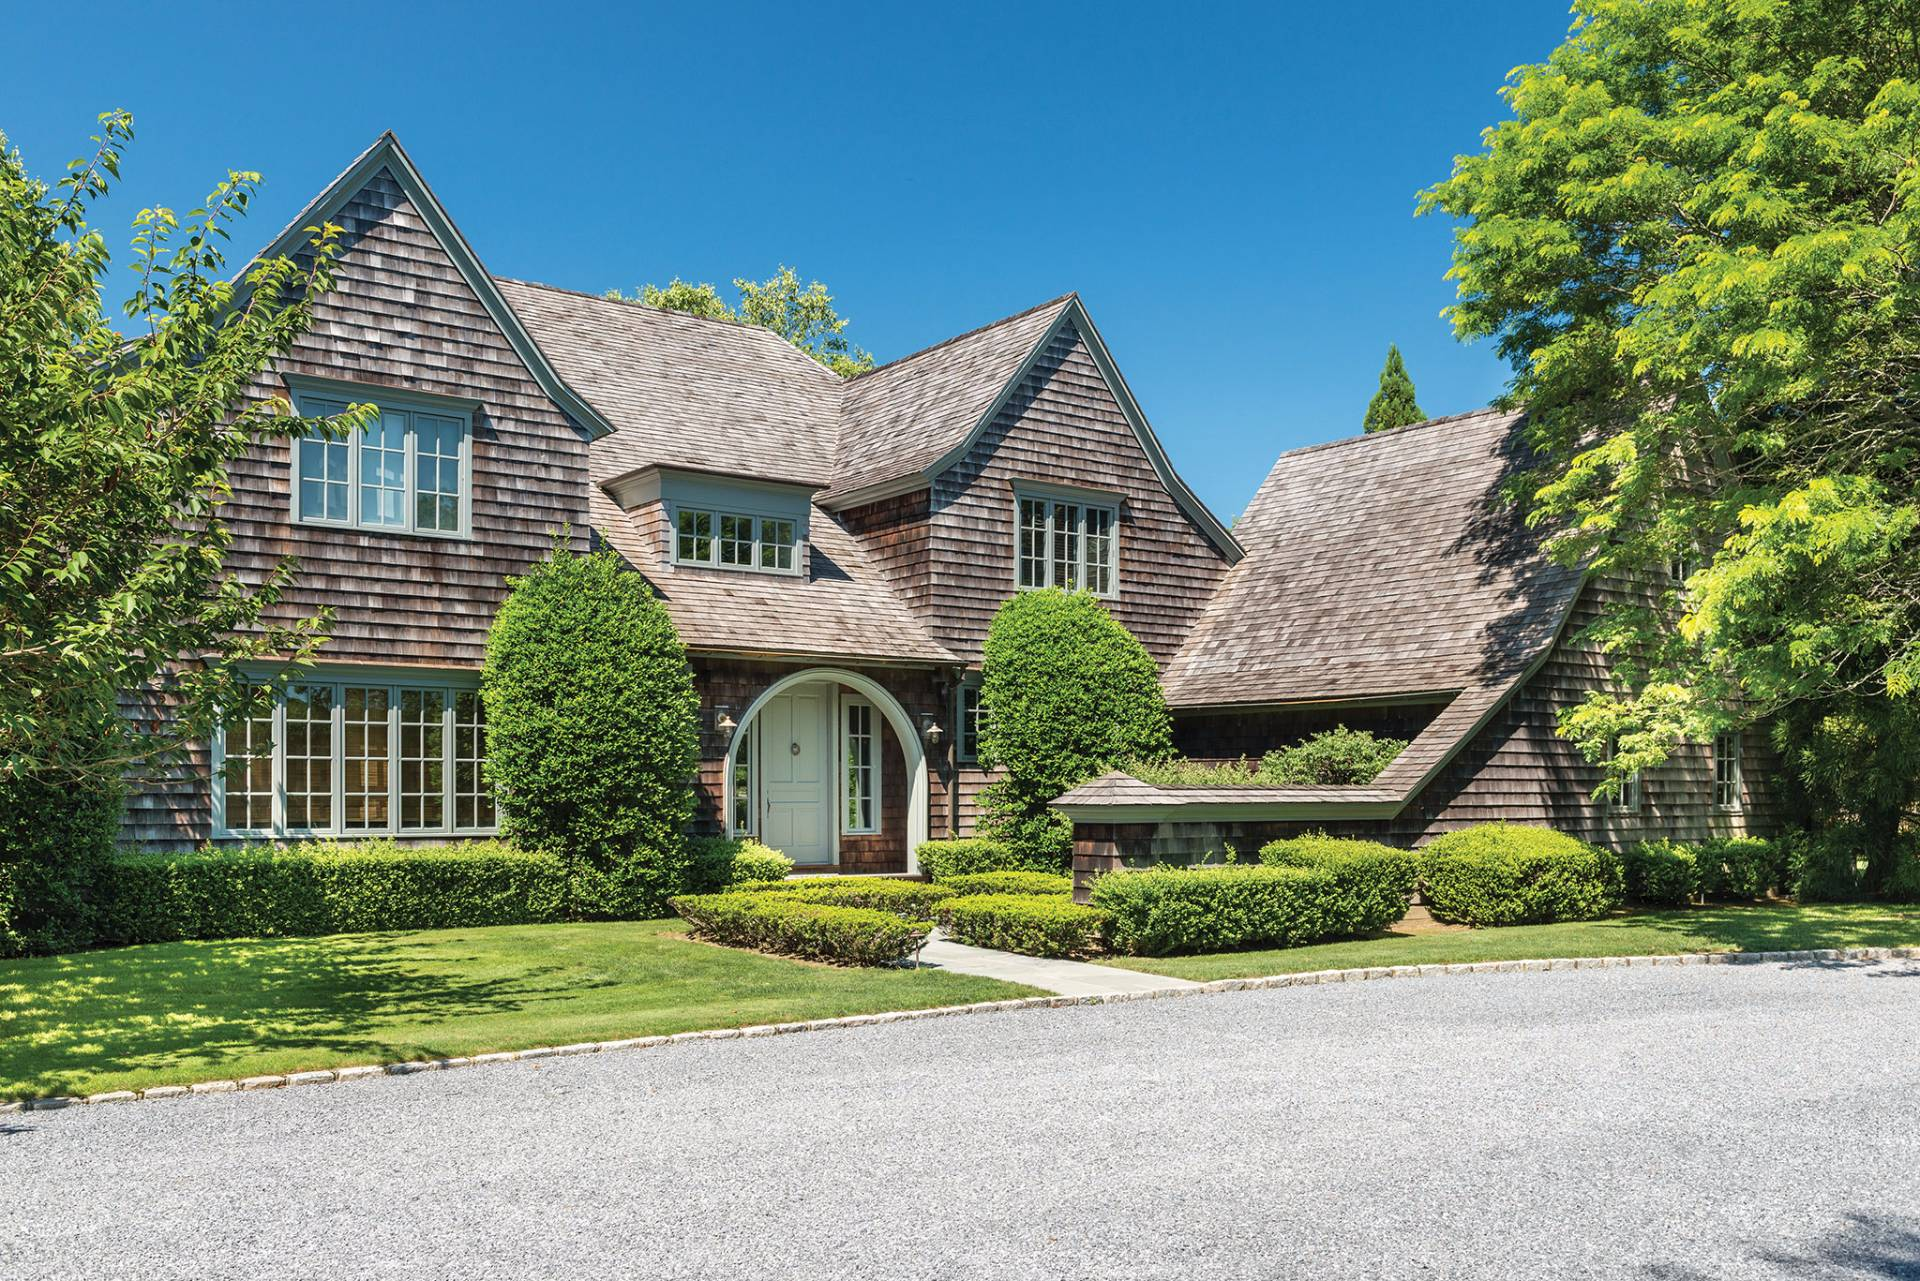 Single Family Home for Sale at Bridgehampton South Classic 206 Halsey Lane, Bridgehampton, New York